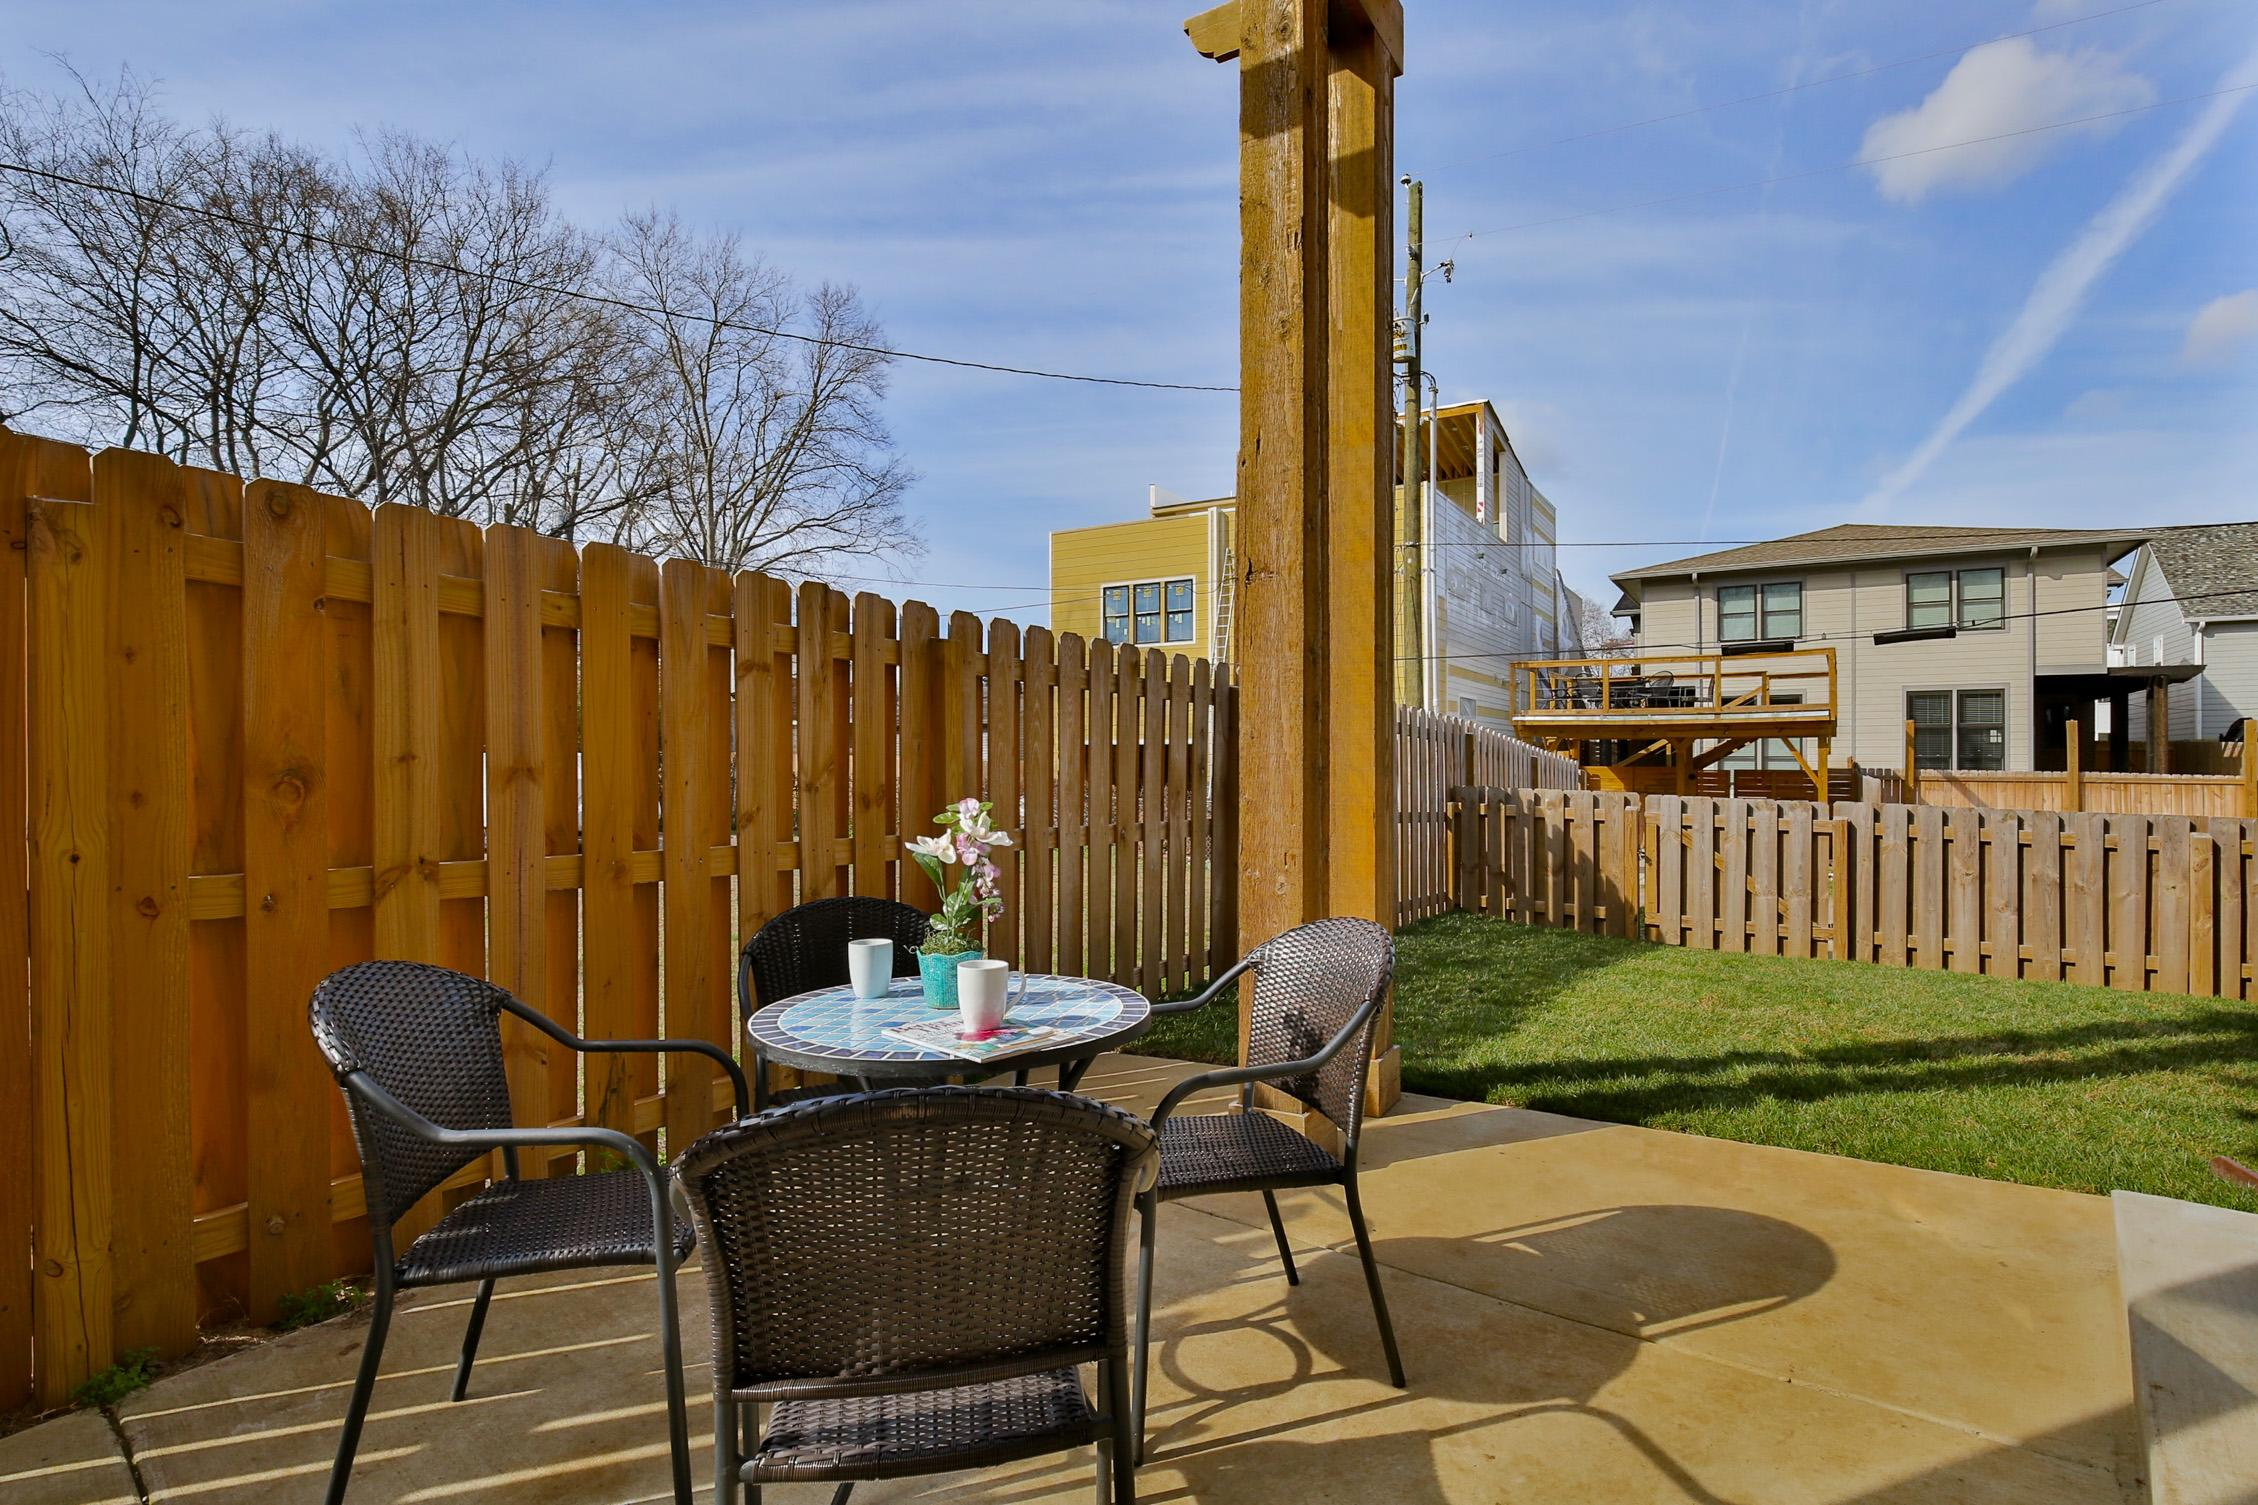 The spacious backyard is perfect for enjoying your morning coffee or evening bottle of wine.